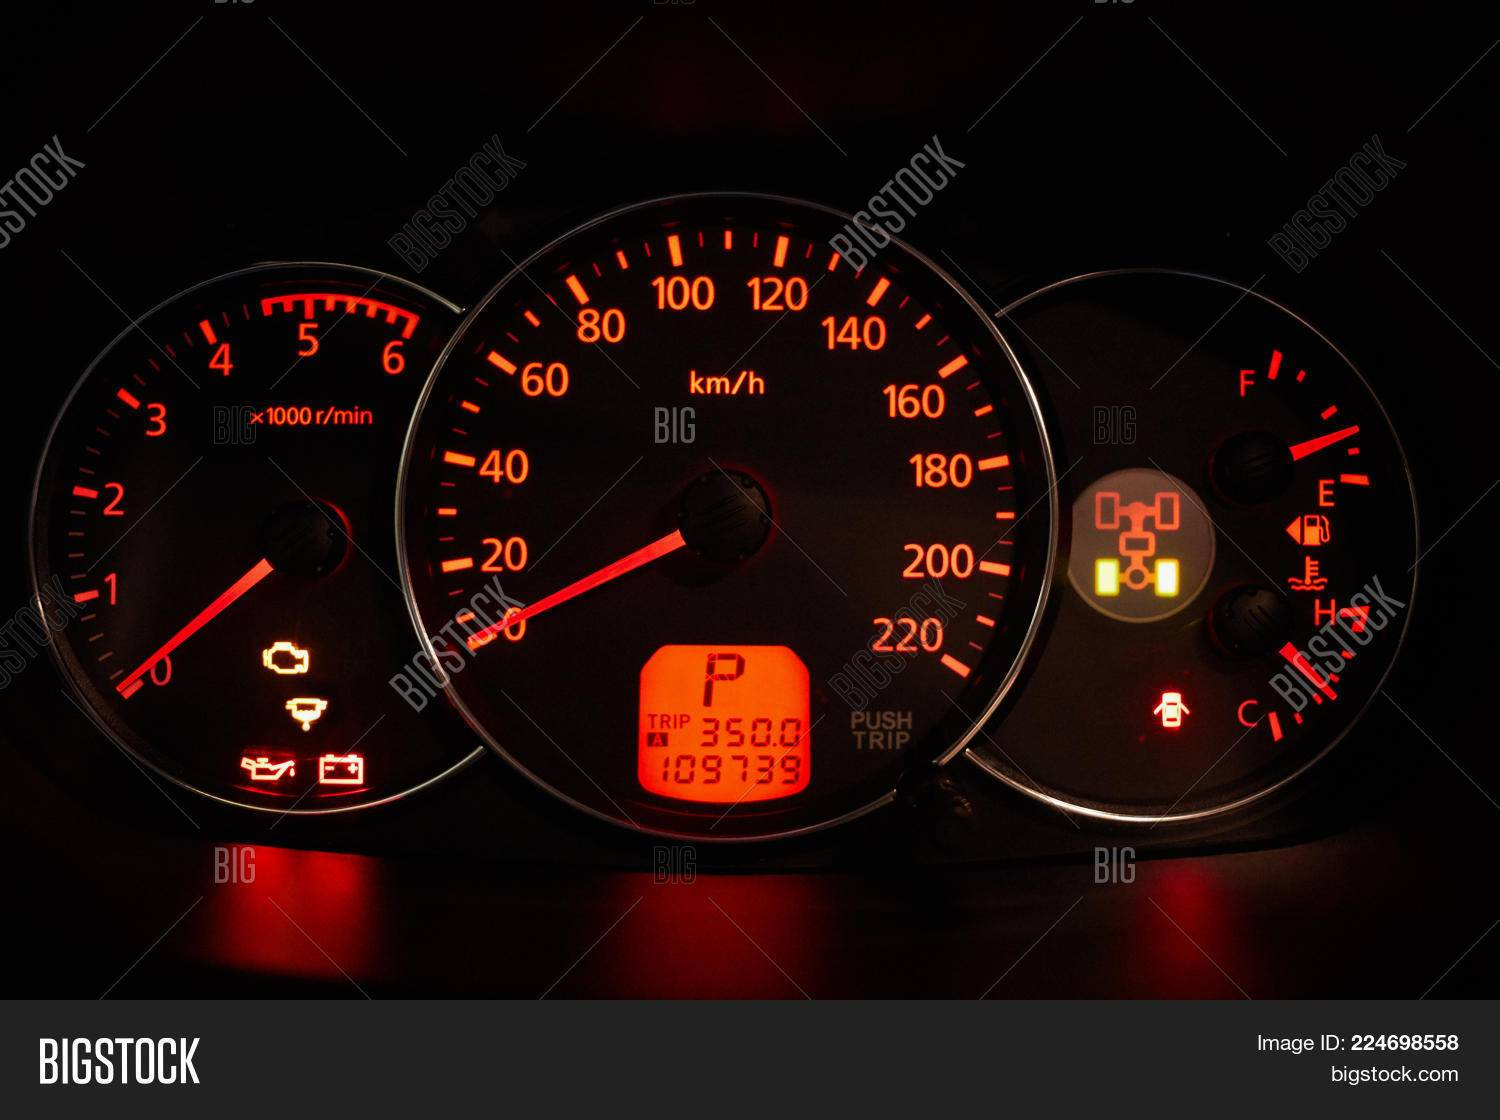 Powerpoint Car Dashboard Template